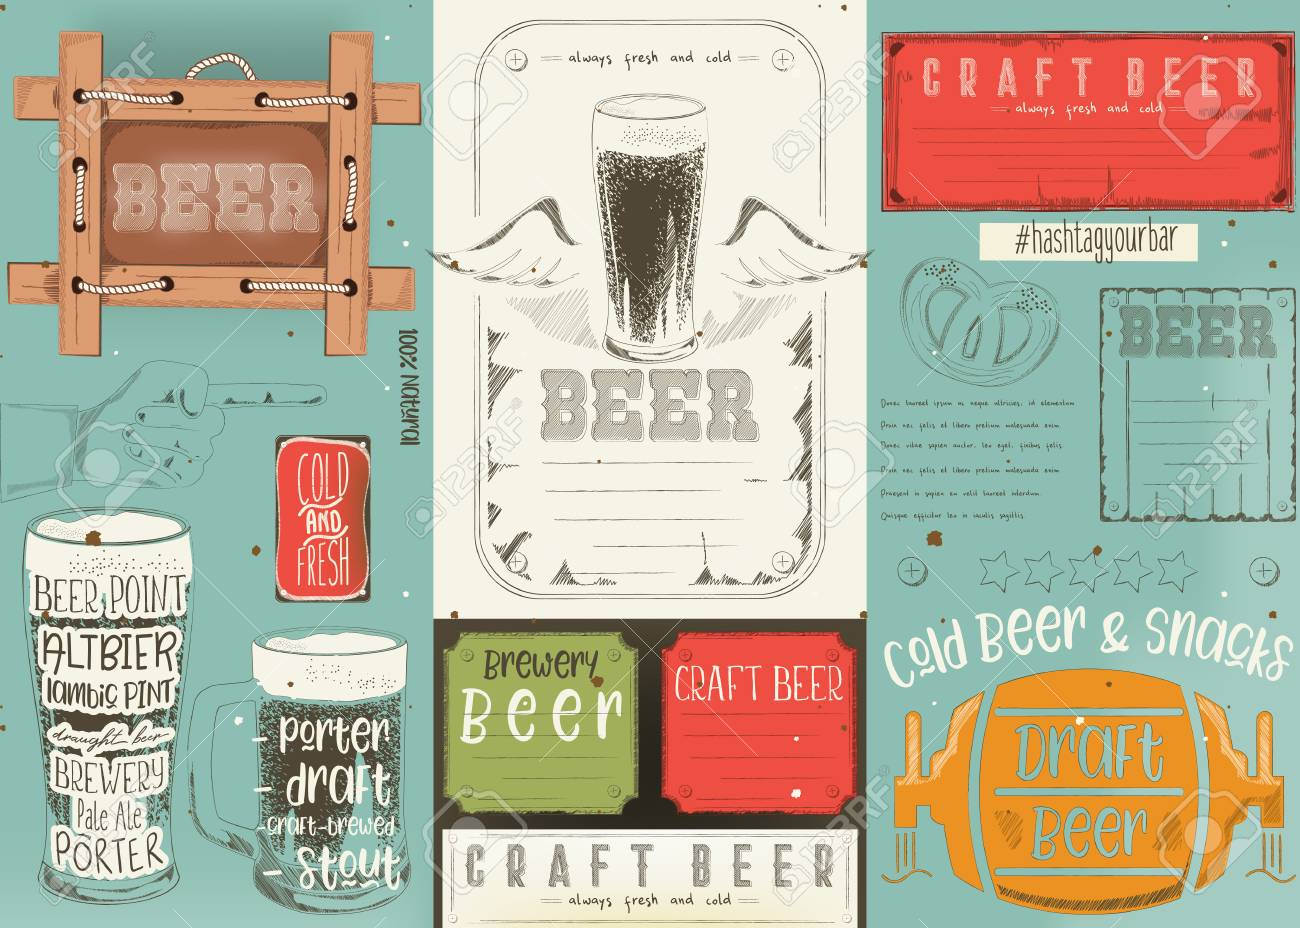 Beer Drawn Menu Design Craft Beer Placement For Restaurant